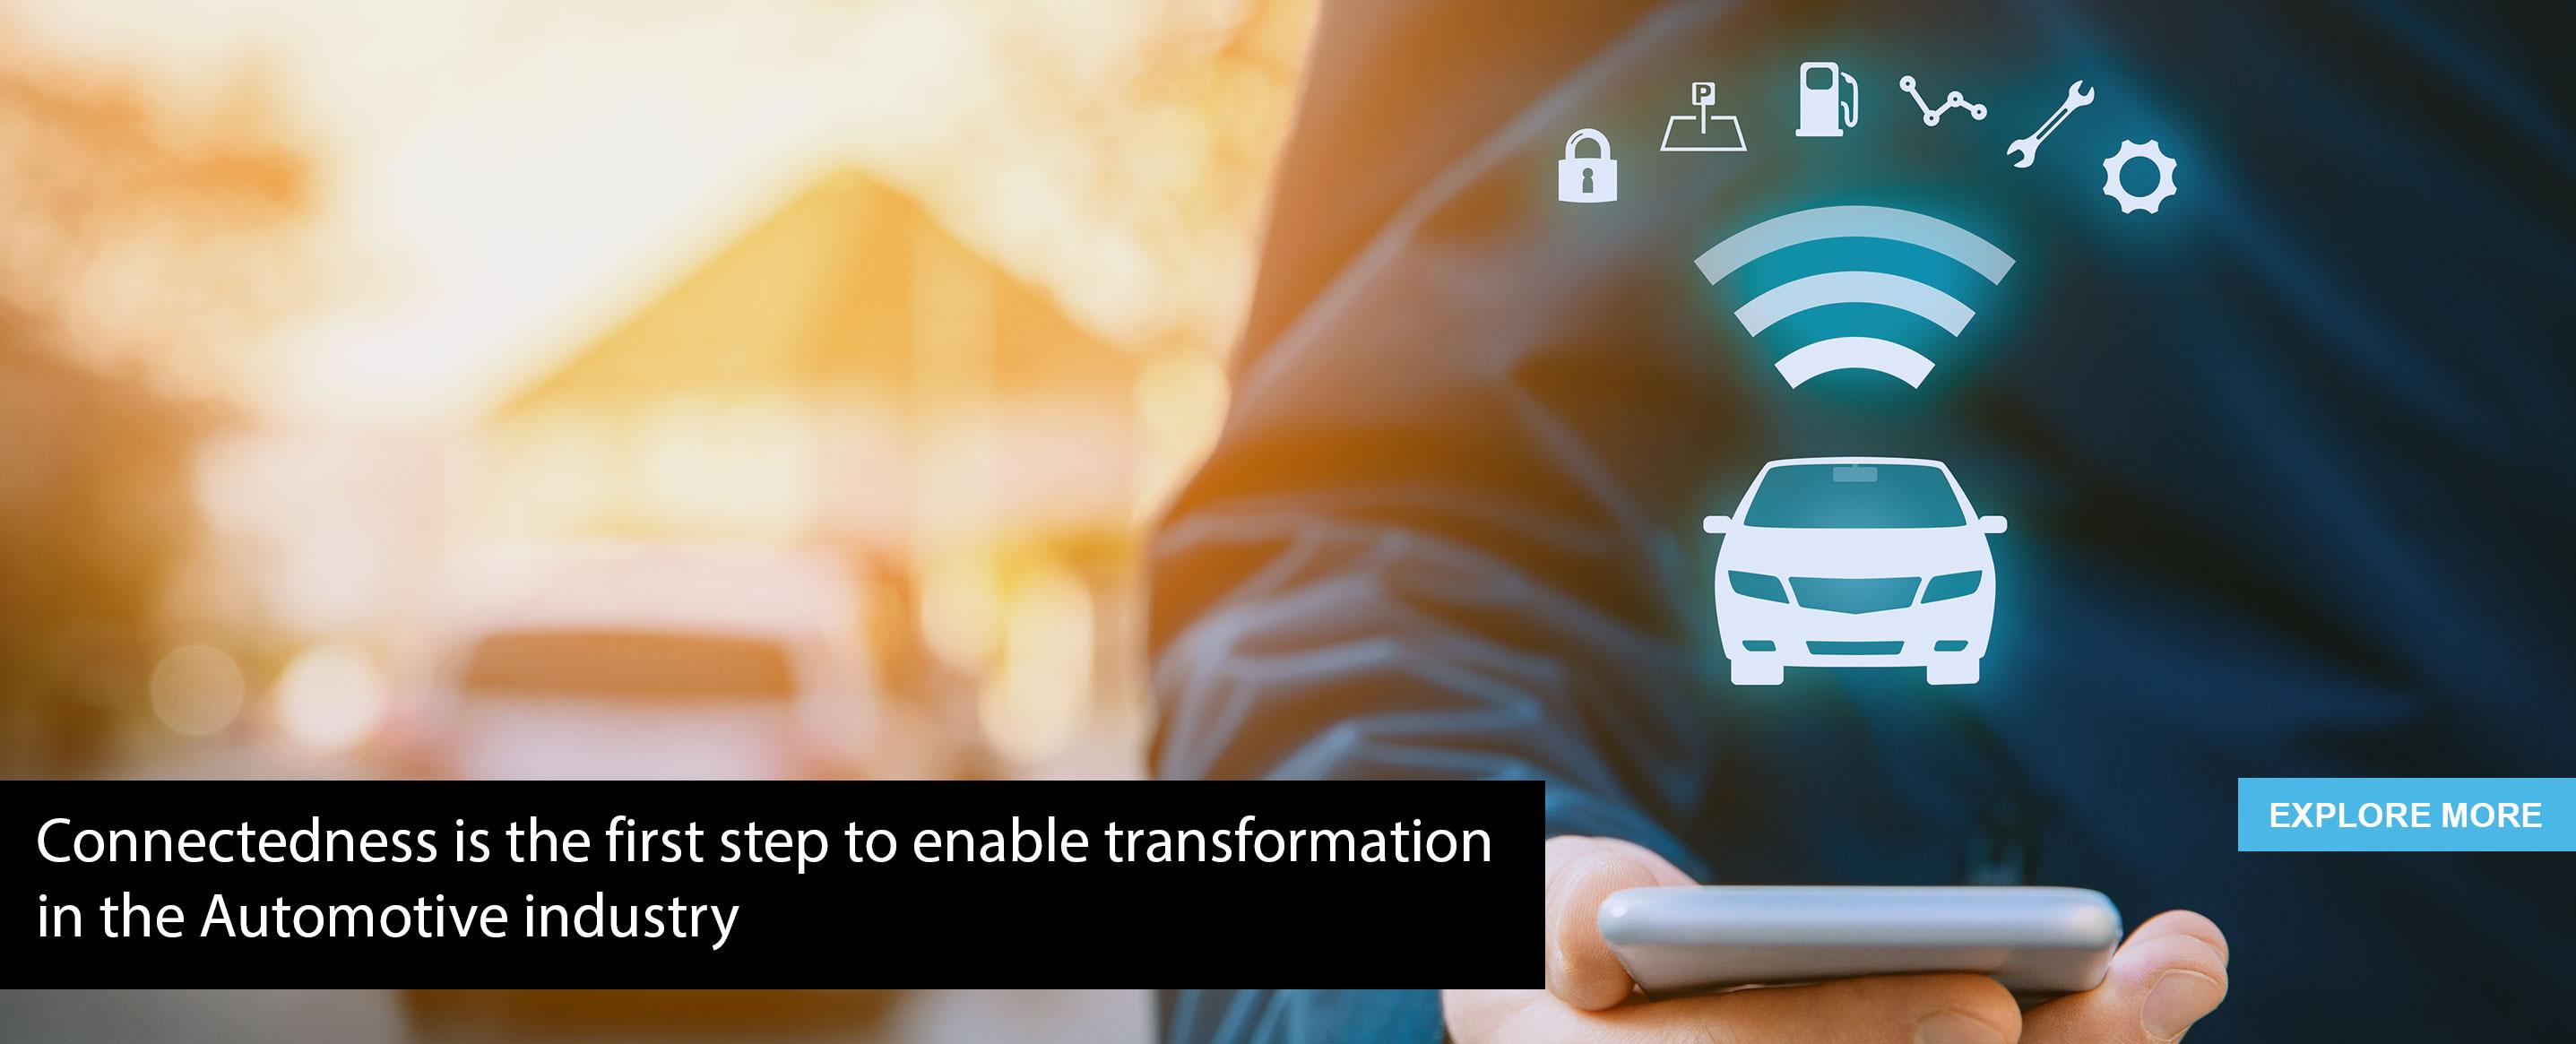 Connectedness is the first step to enable transformation in the automotive industry, says Nitin Pai of Tata Elxsi